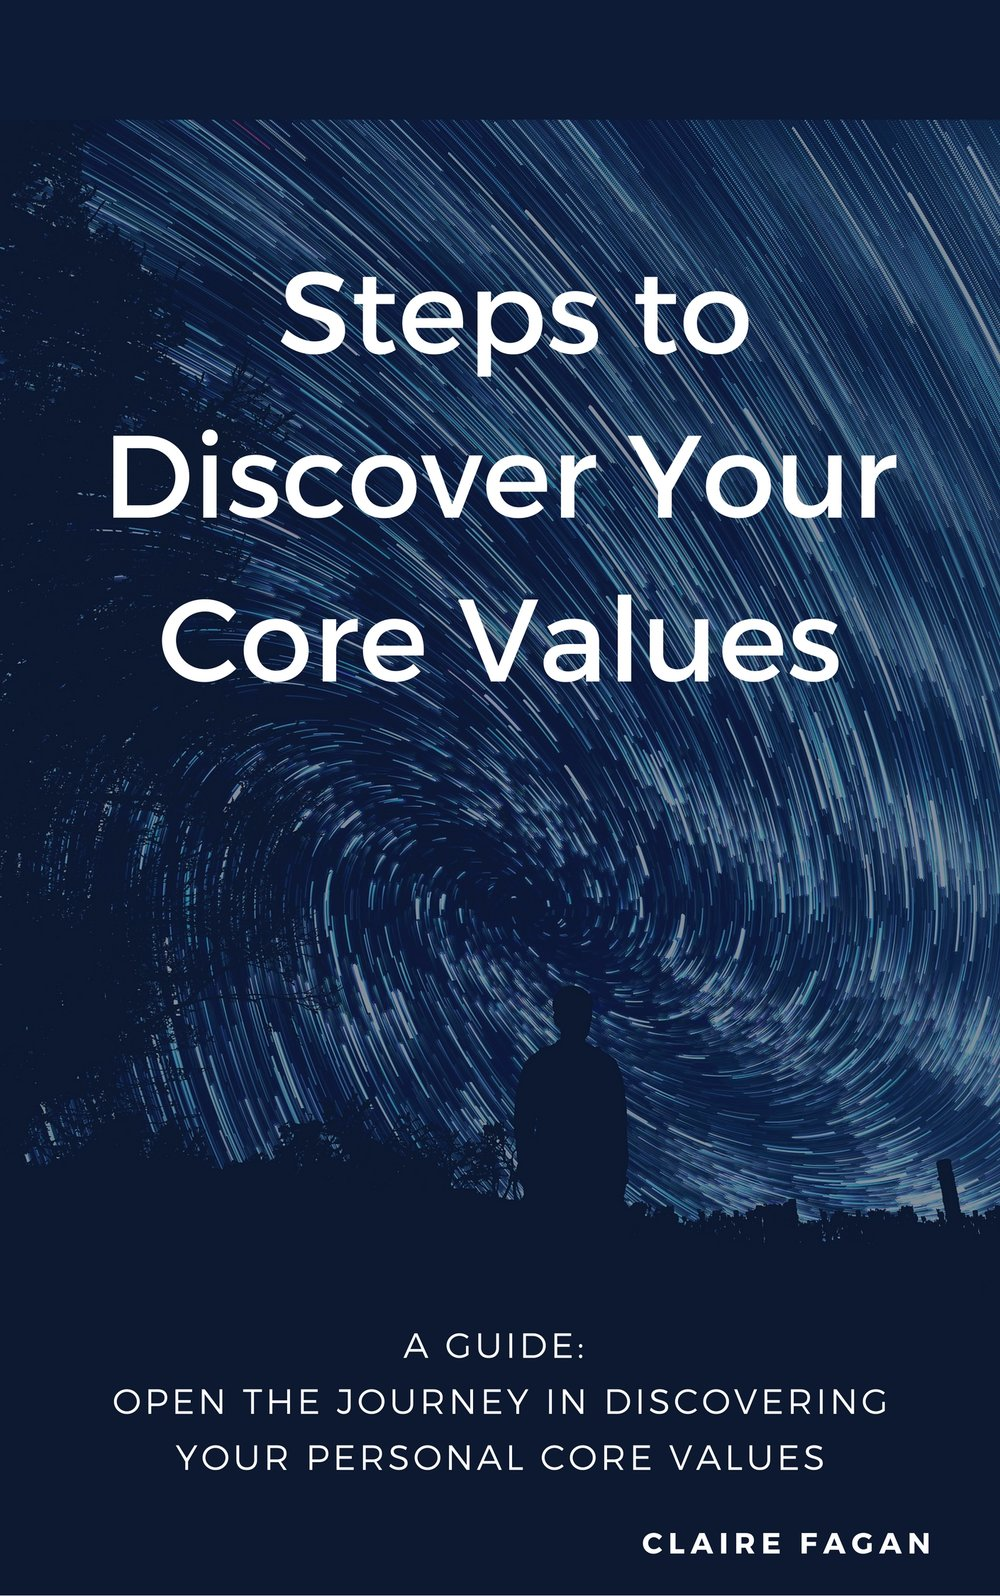 Discover your personal core values - Our CORE values refer to what is really important to us. They give insight into who we really are. When we live in accordance with our values, our external actions and behaviours match the internal qualities that are most important to us.